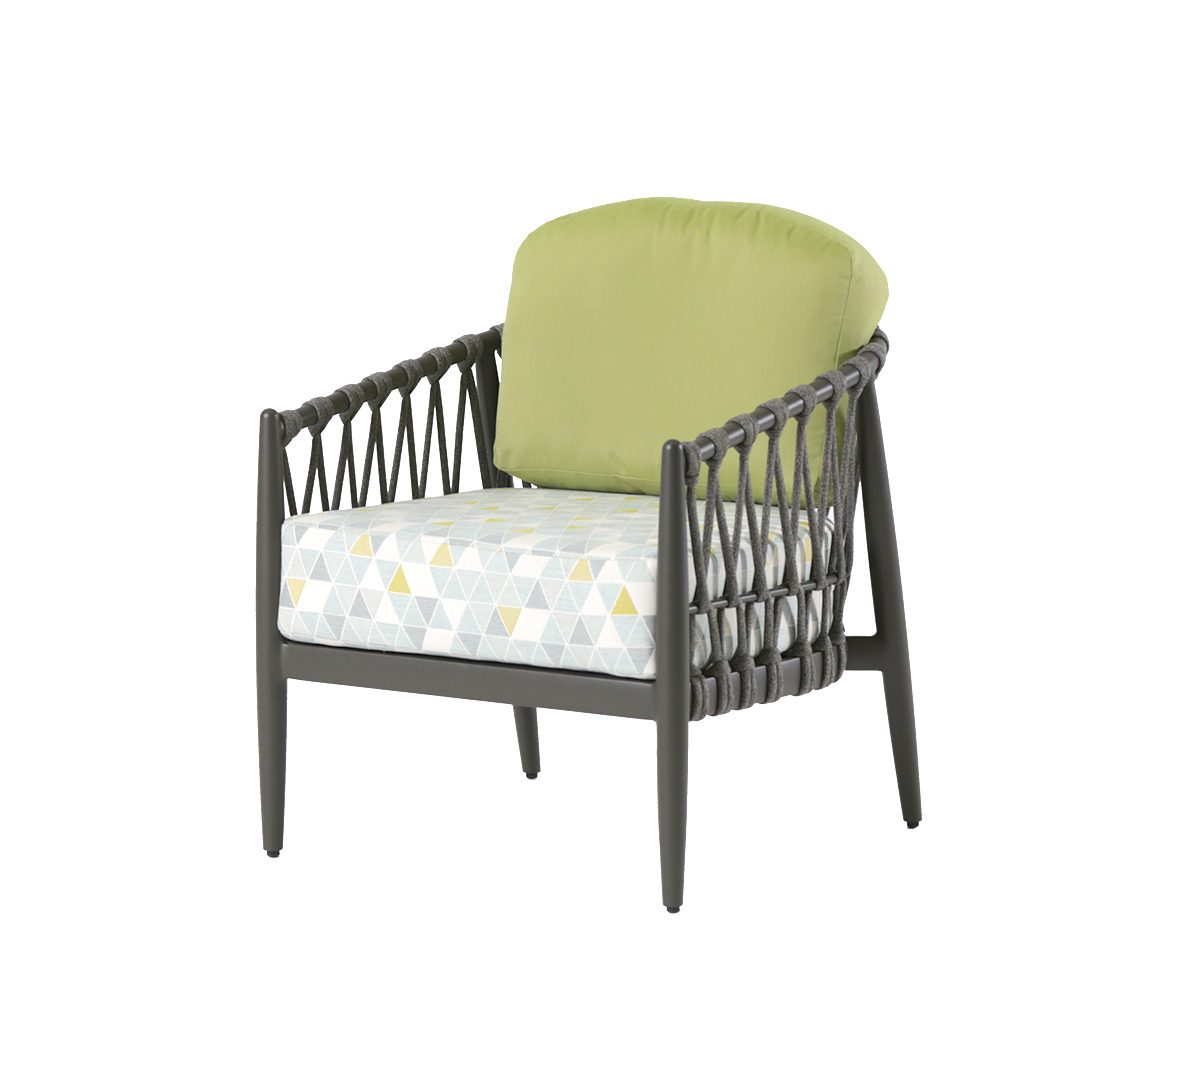 The Lamego club chair with patterned seat cushion and green back cushion.